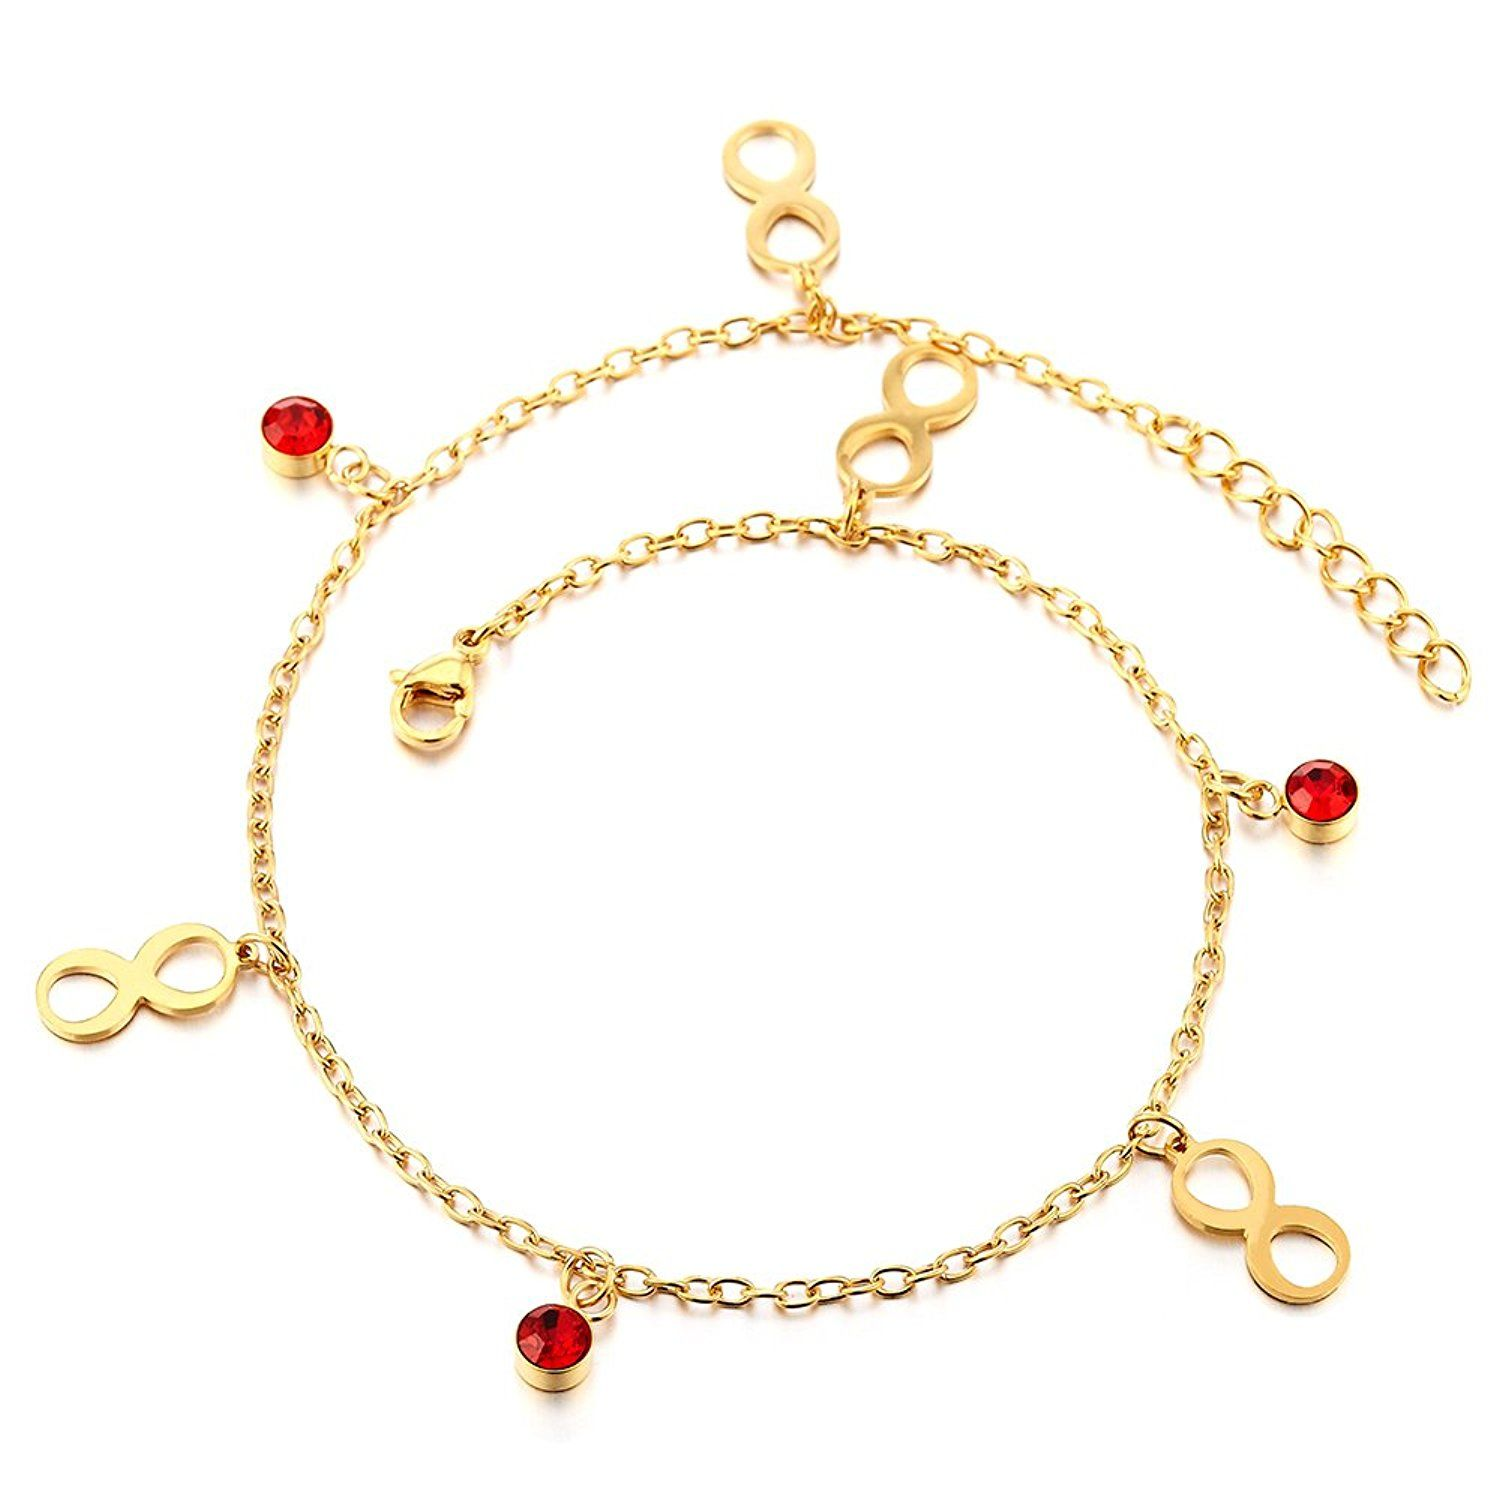 pie design corazones heart ankle pulso filled foot women jewelry wrist corazon set unique with anklet bracelets bracelet charms and de evil gold products